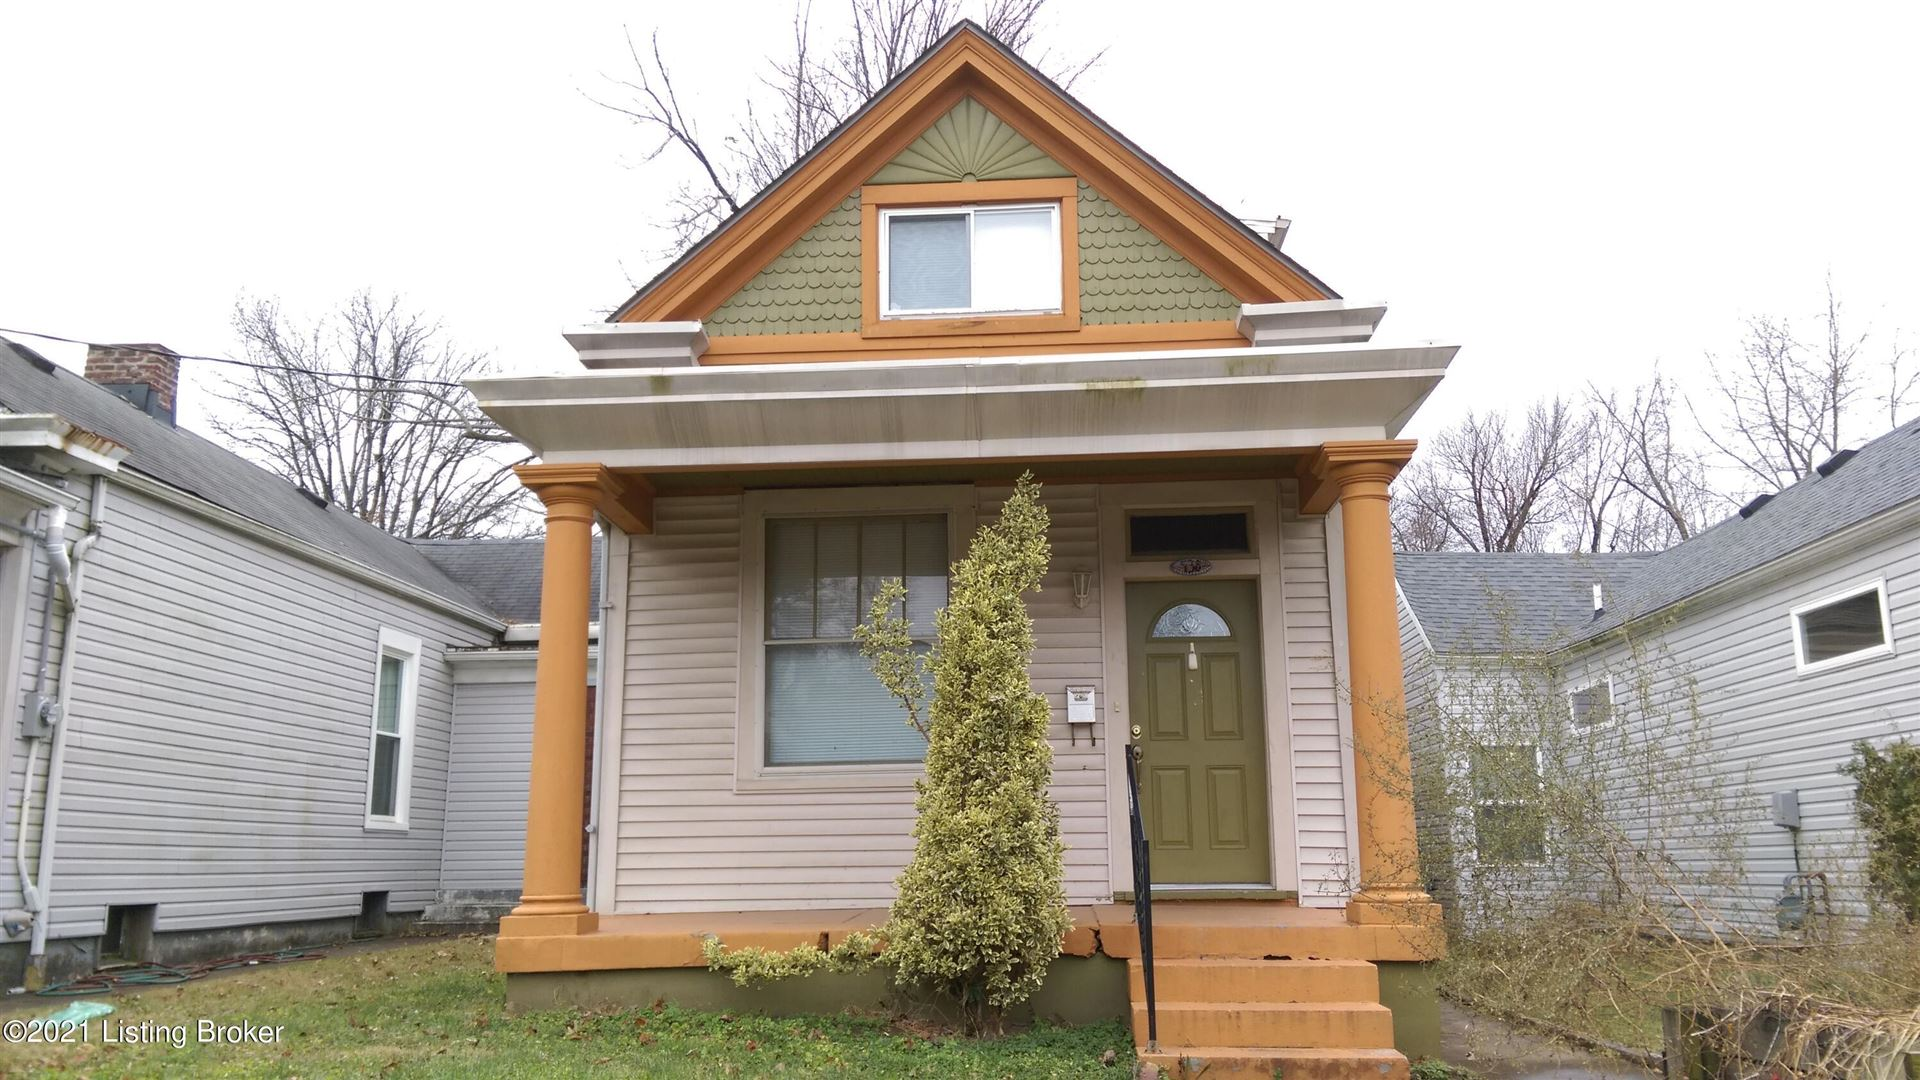 Photo for 938 Charles St, Louisville, KY 40204 (MLS # 1597307)